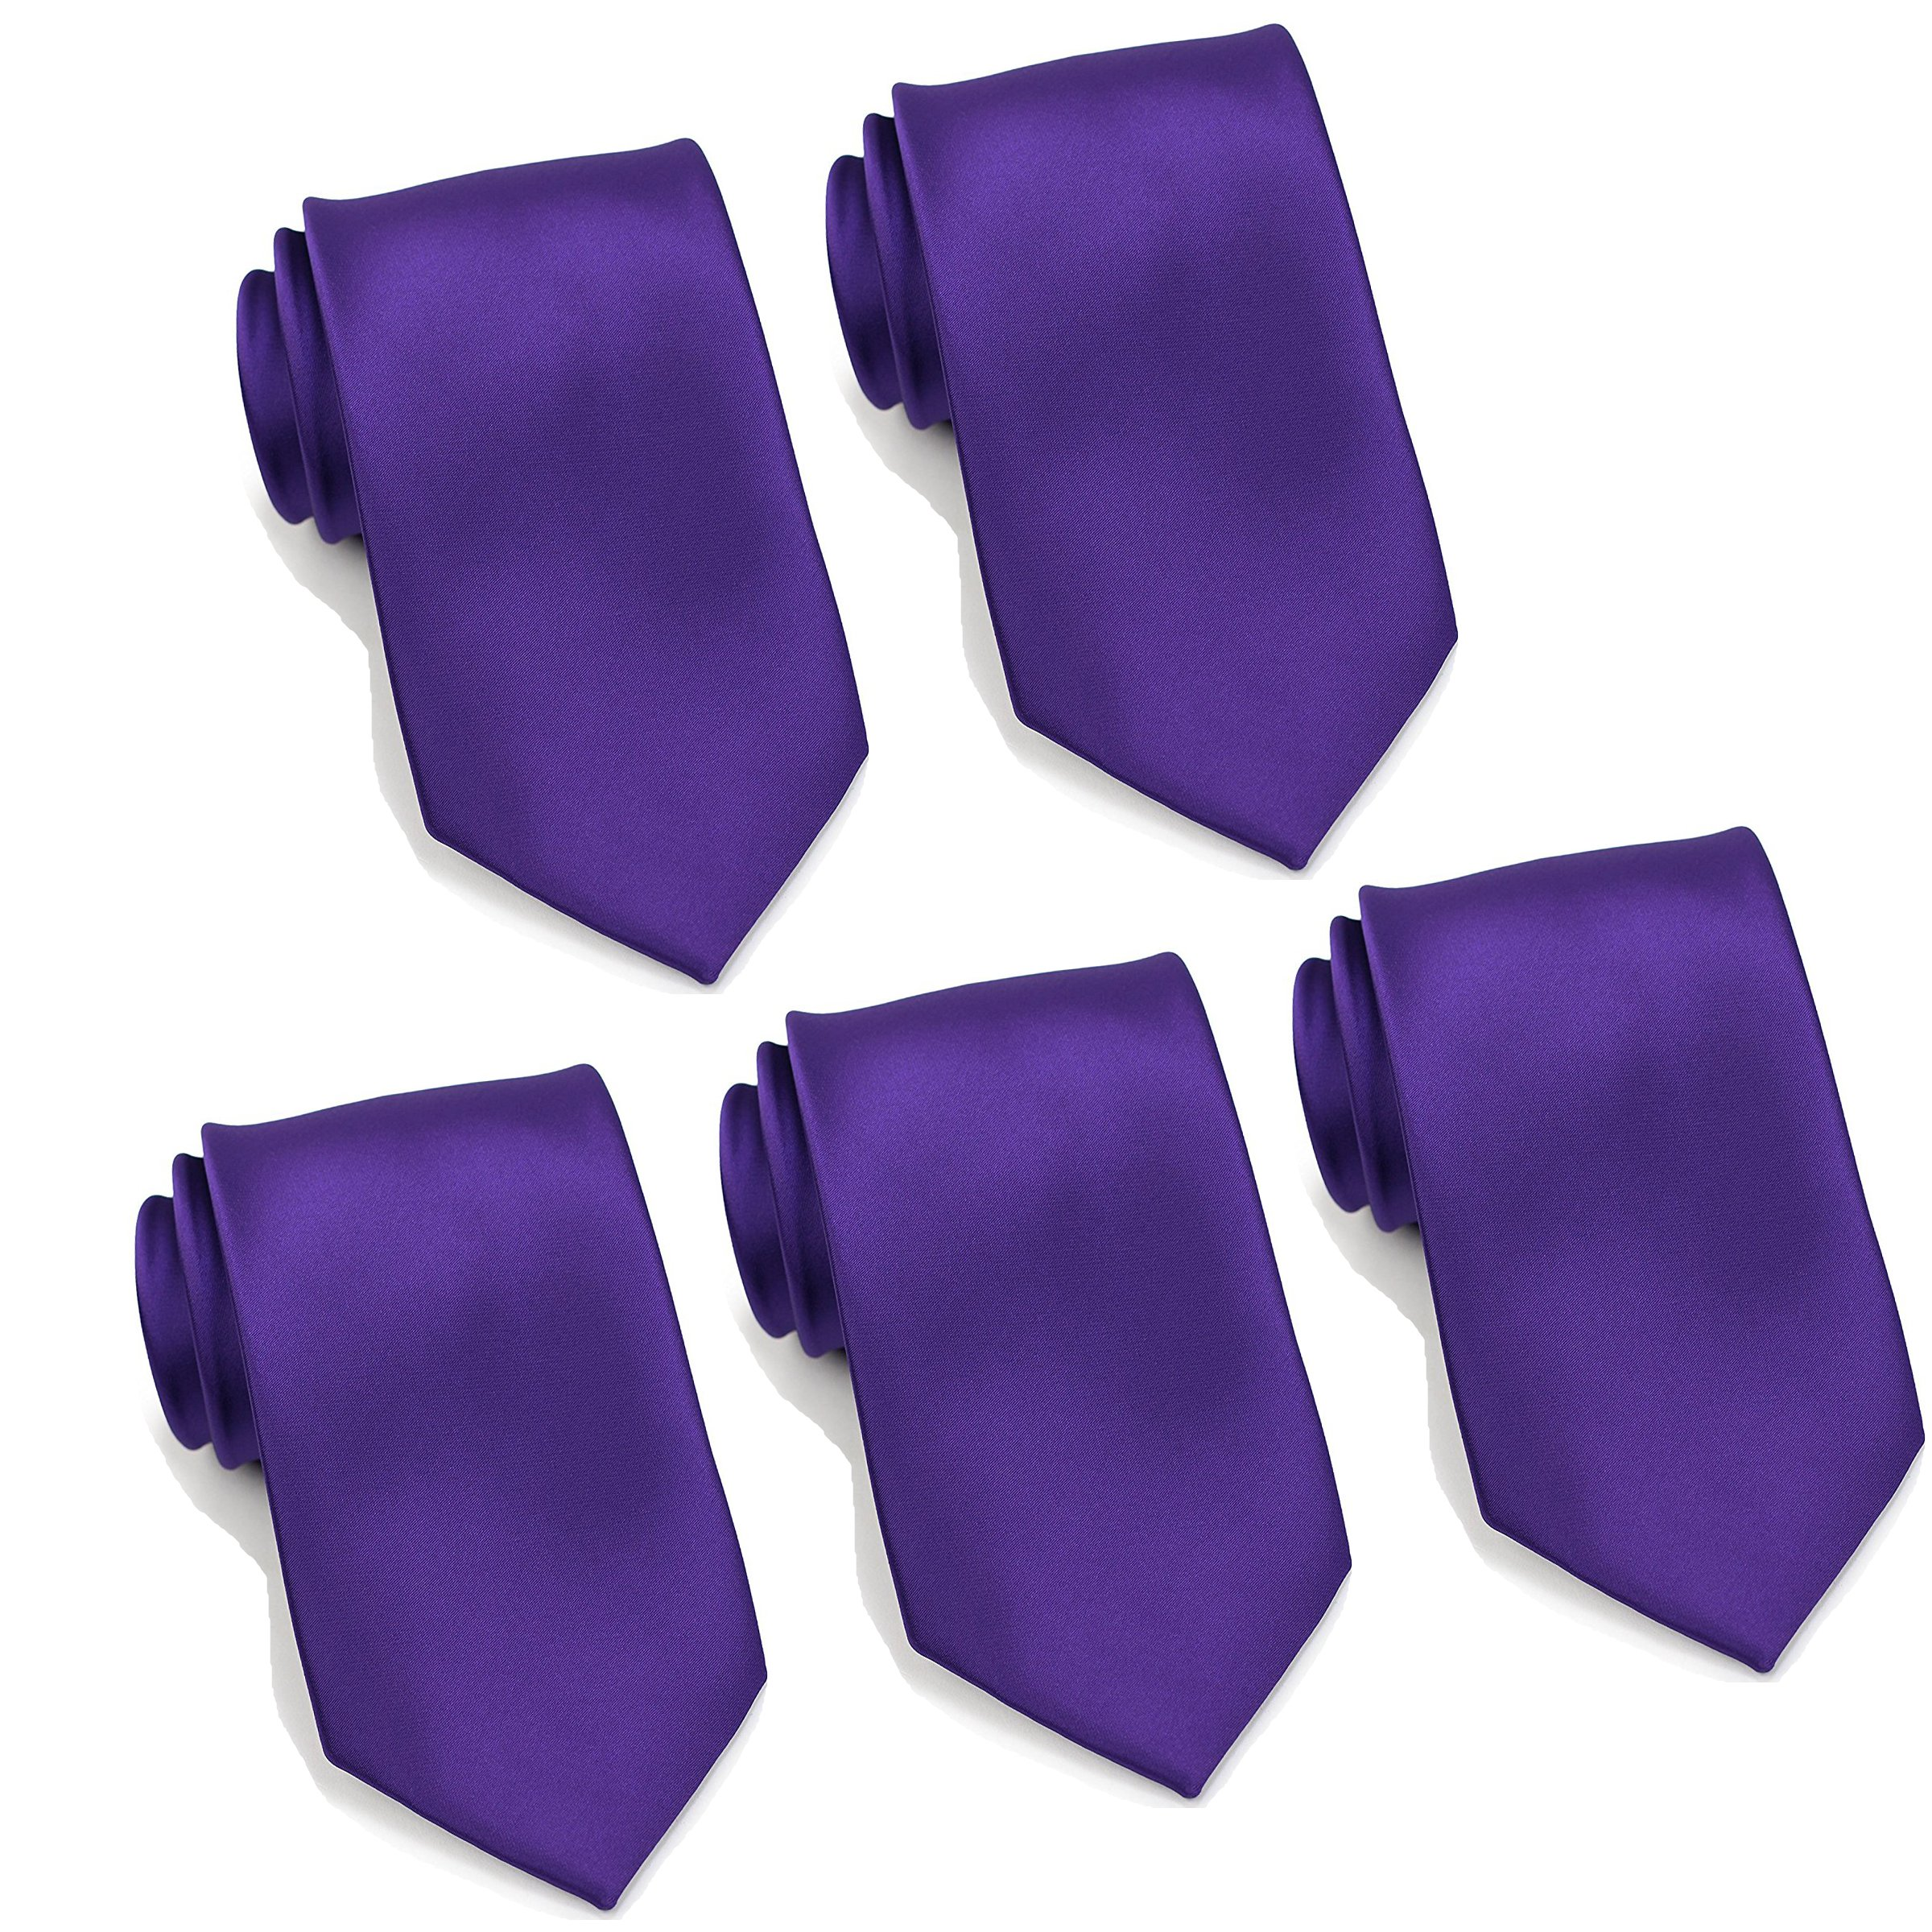 Mens Formal Tie Wholesale Lot of 5 Mens Solid Color Wedding Ties 3.5'' Satin Finish (Purple)